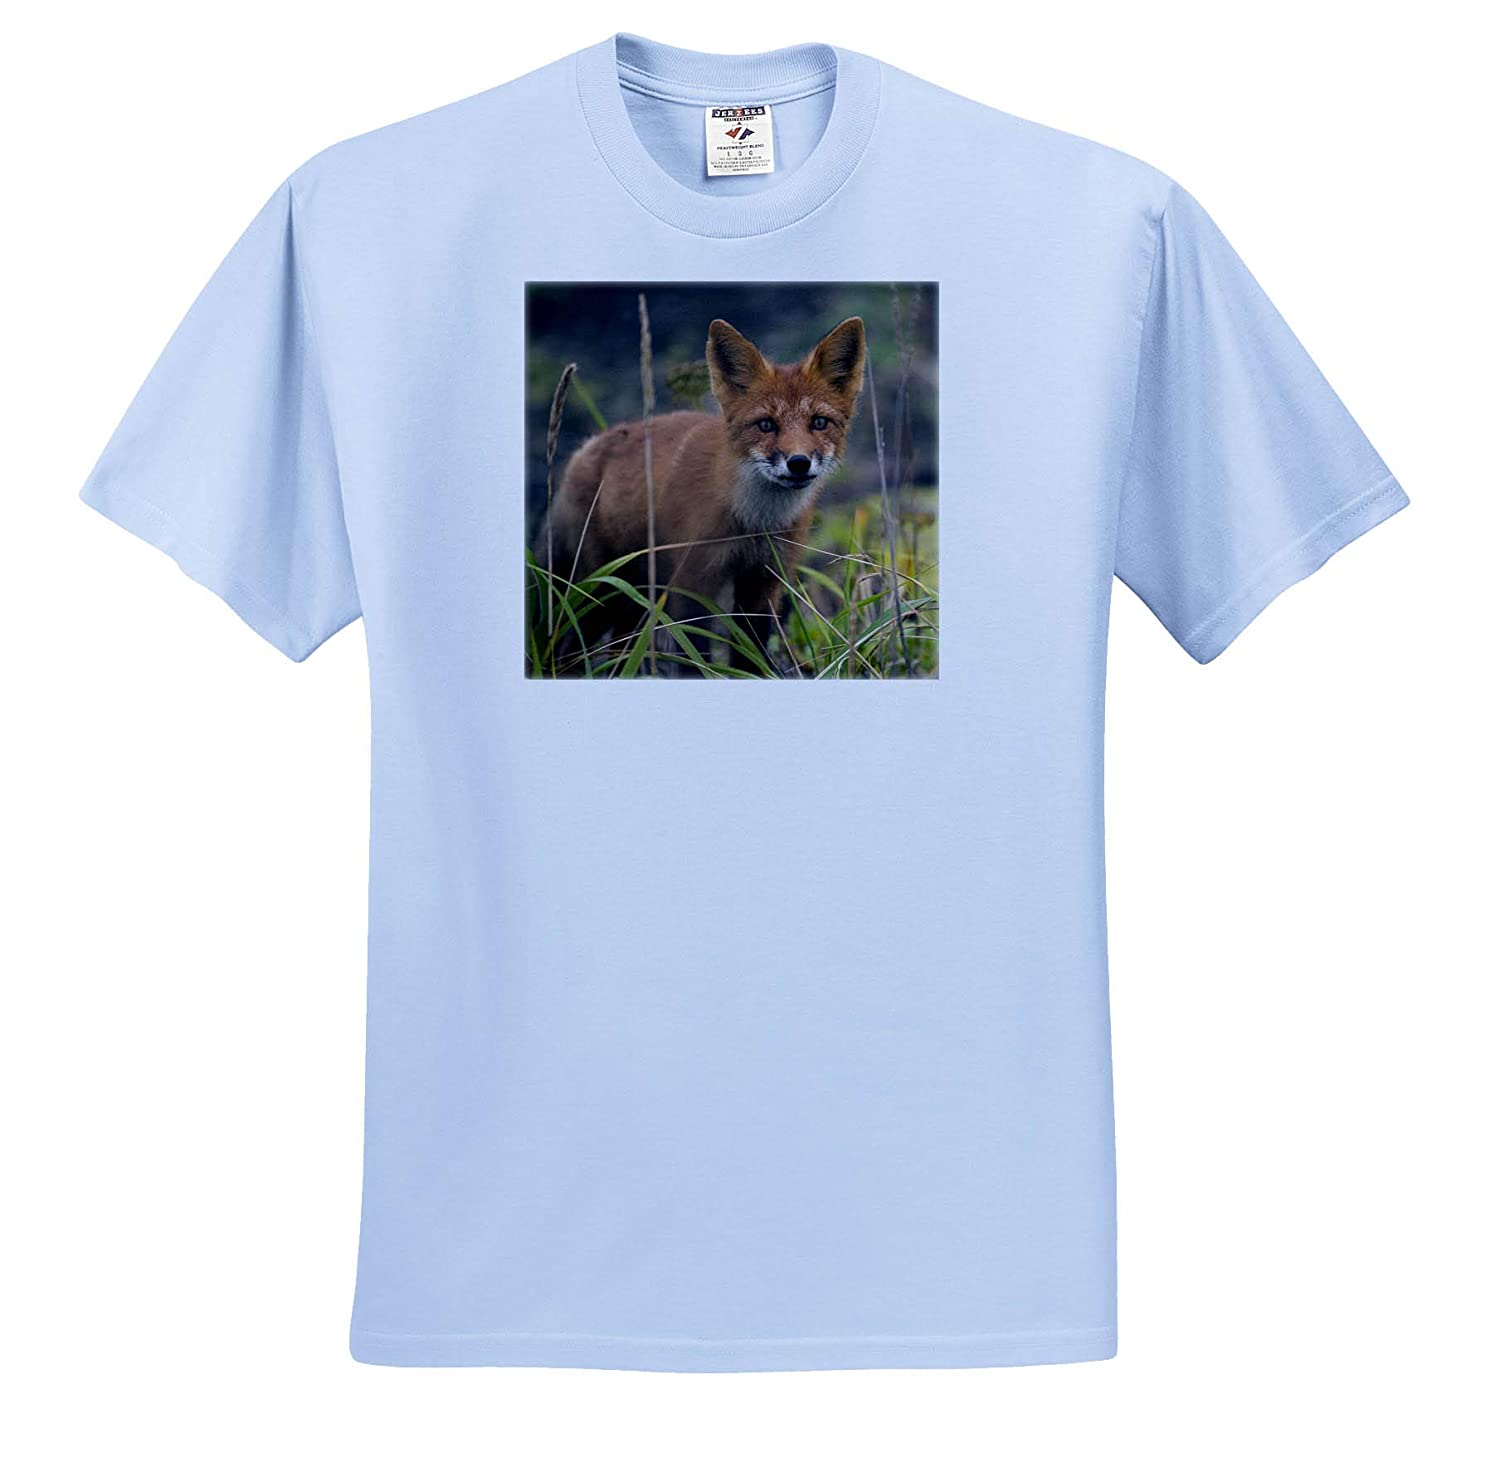 Atlasova Island Russia ts/_313861 Wild red Fox in Tall Summer Grass 3dRose Danita Delimont - Adult T-Shirt XL Foxes